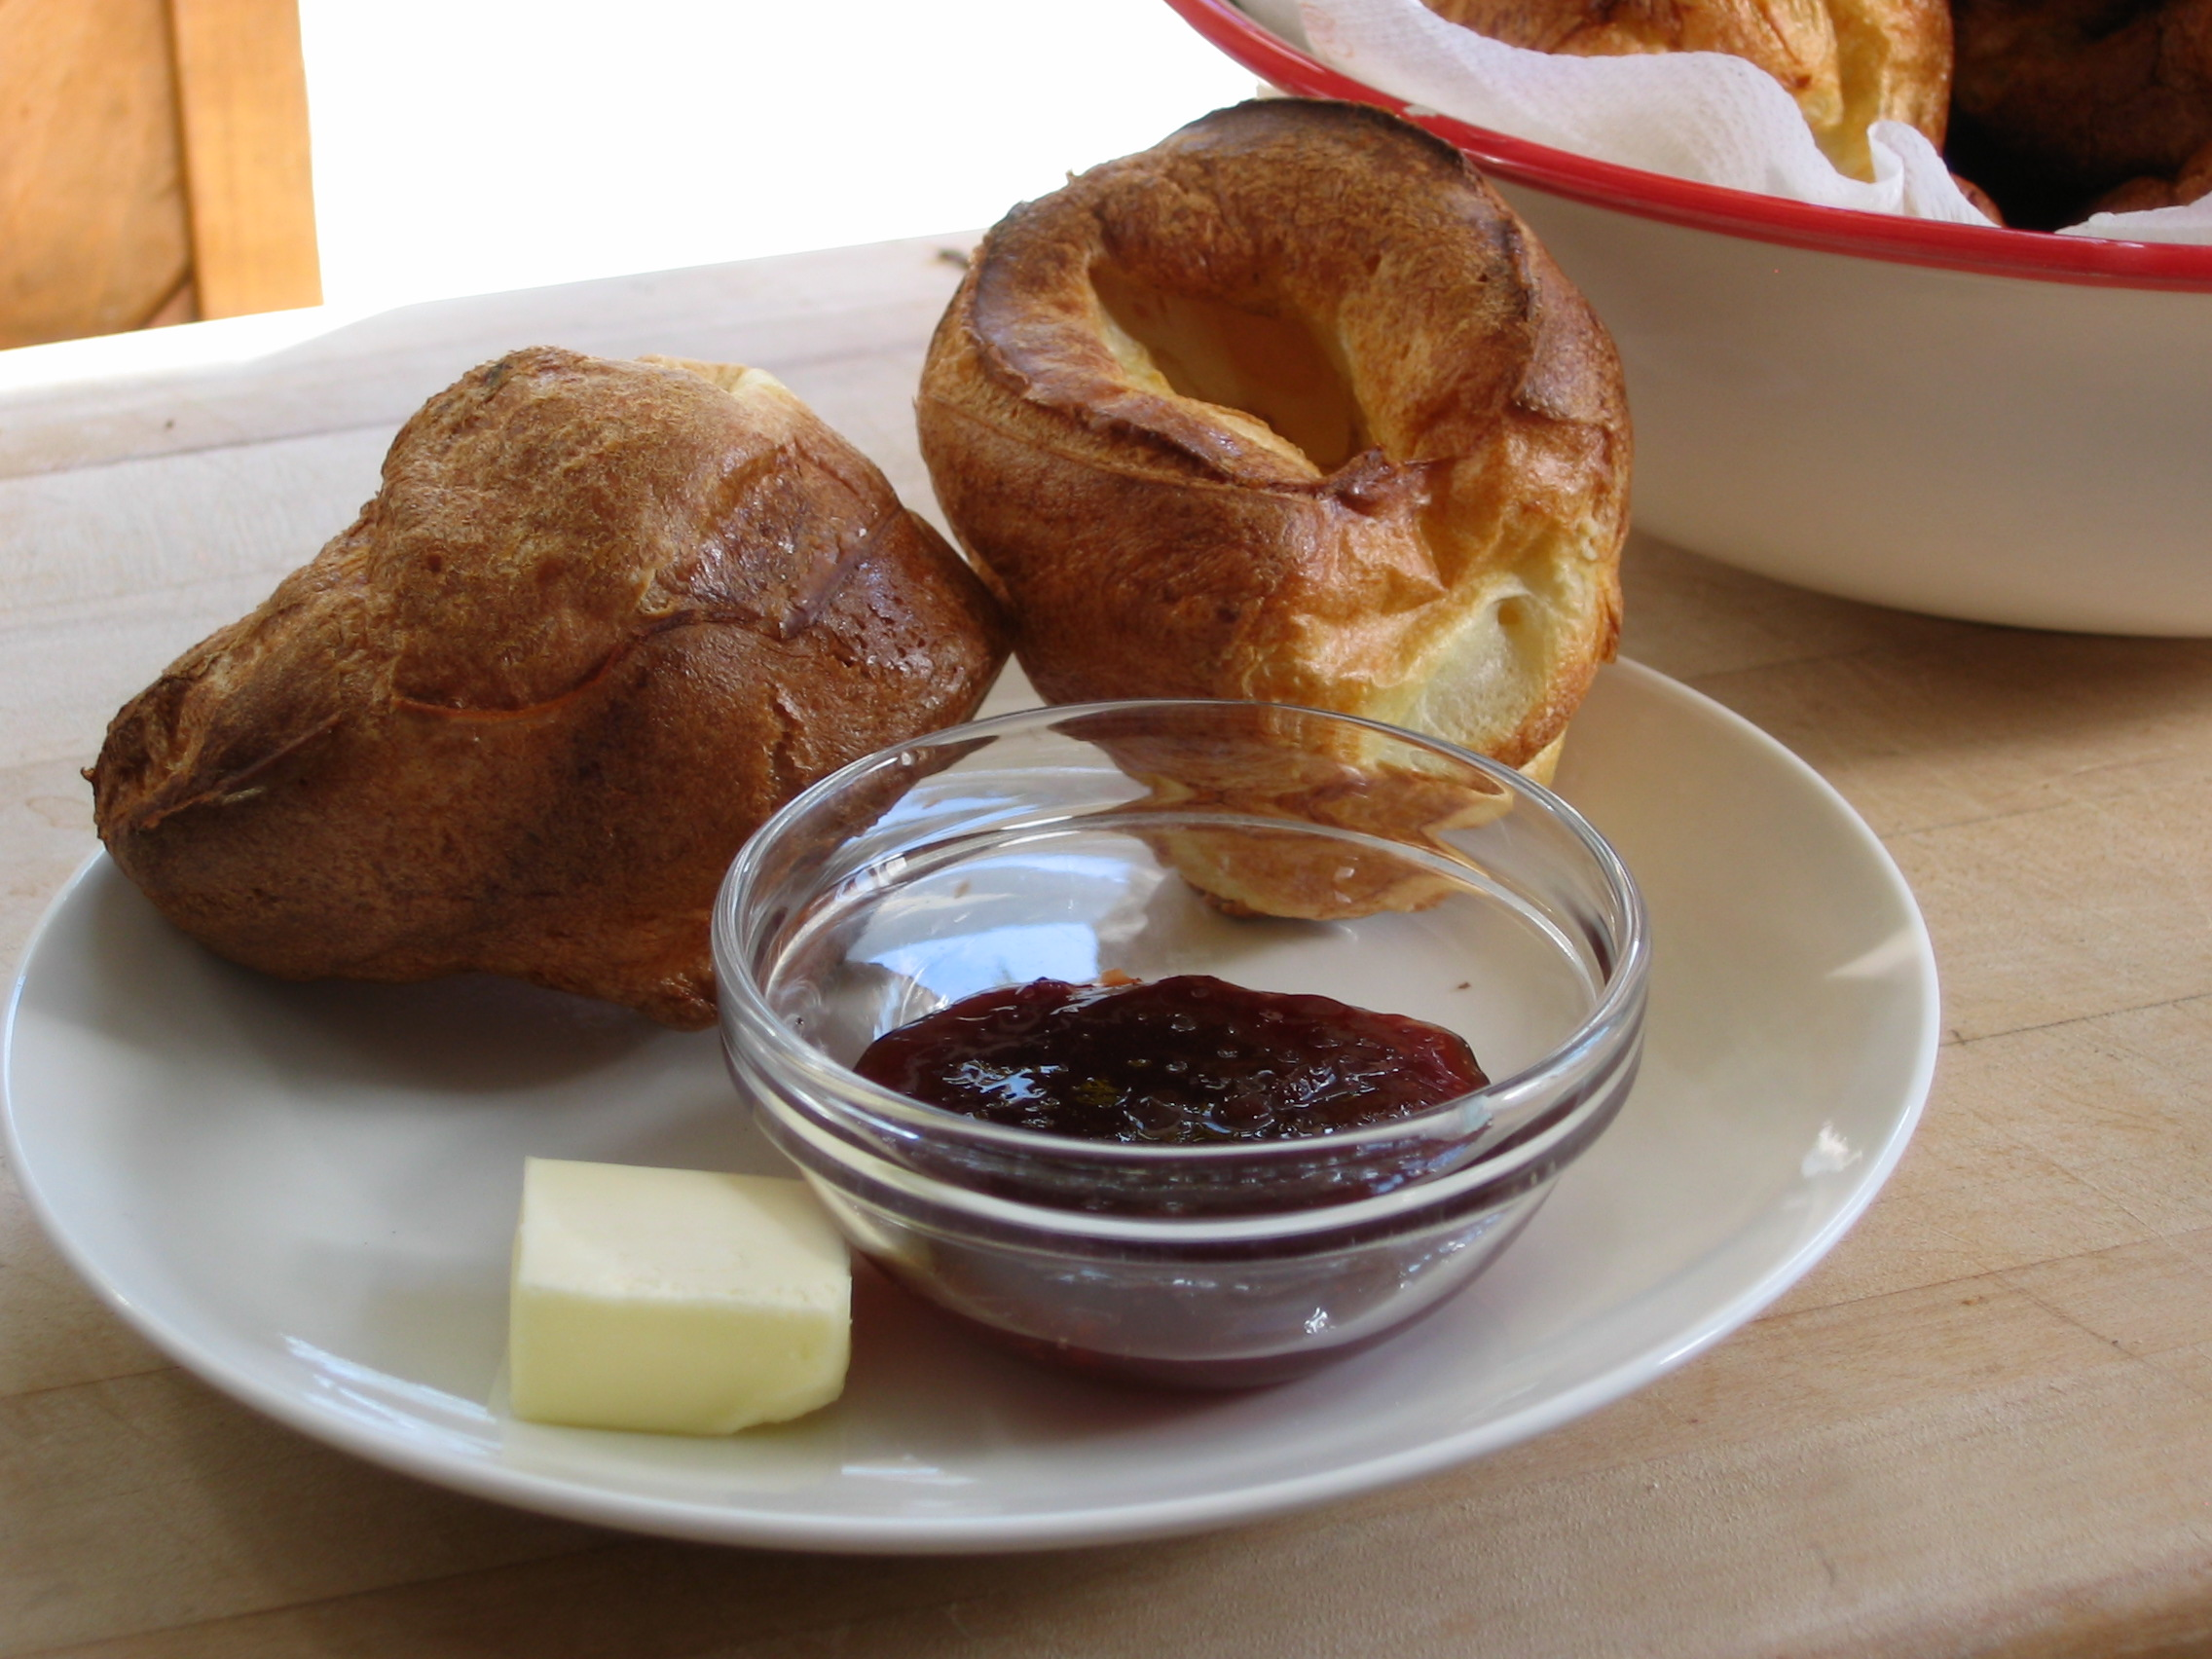 Mmm, Popovers